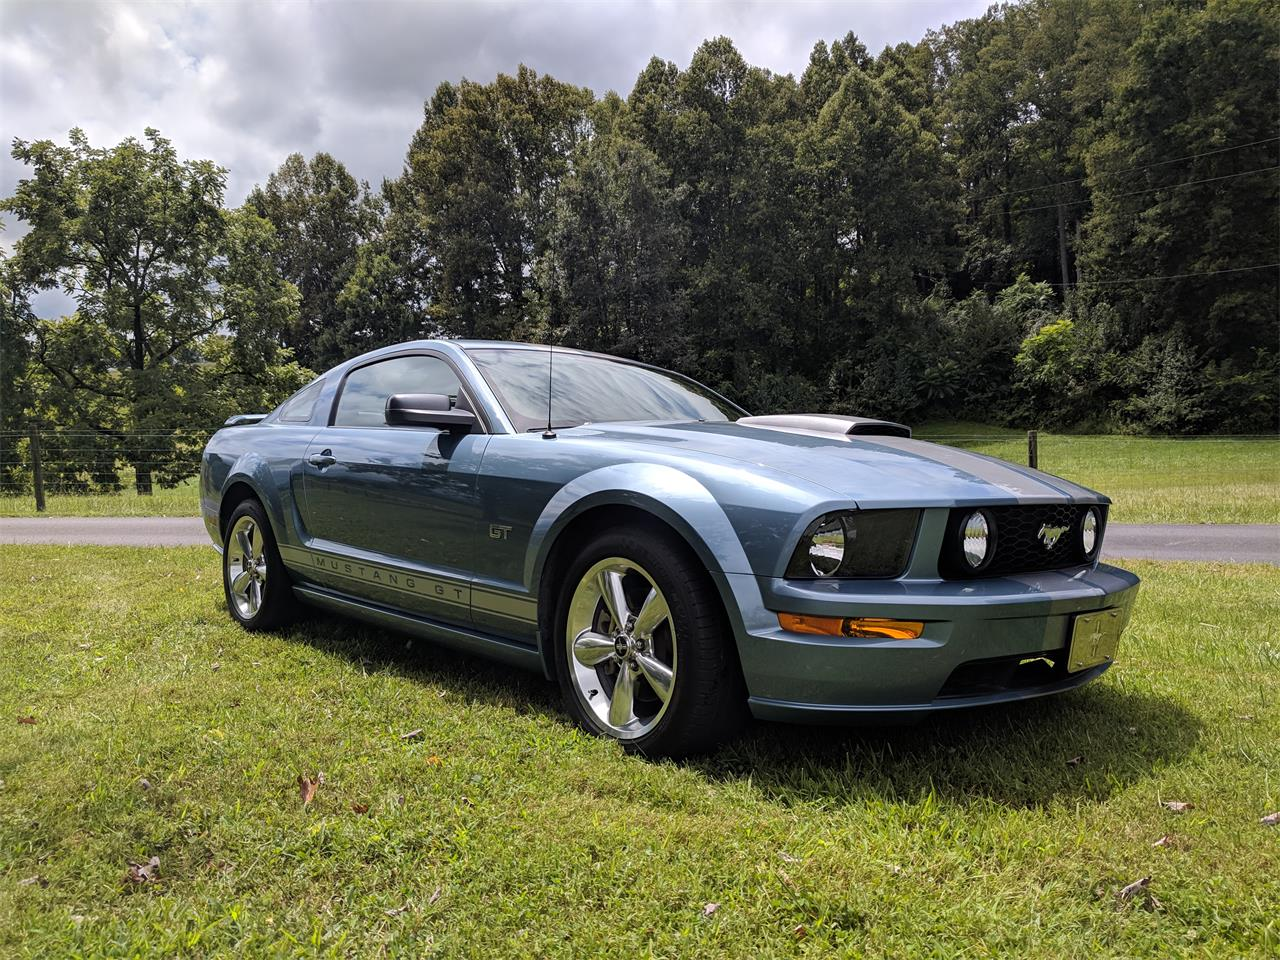 2007 Ford Mustang GT (CC-1265070) for sale in Jonesborough, Tennessee